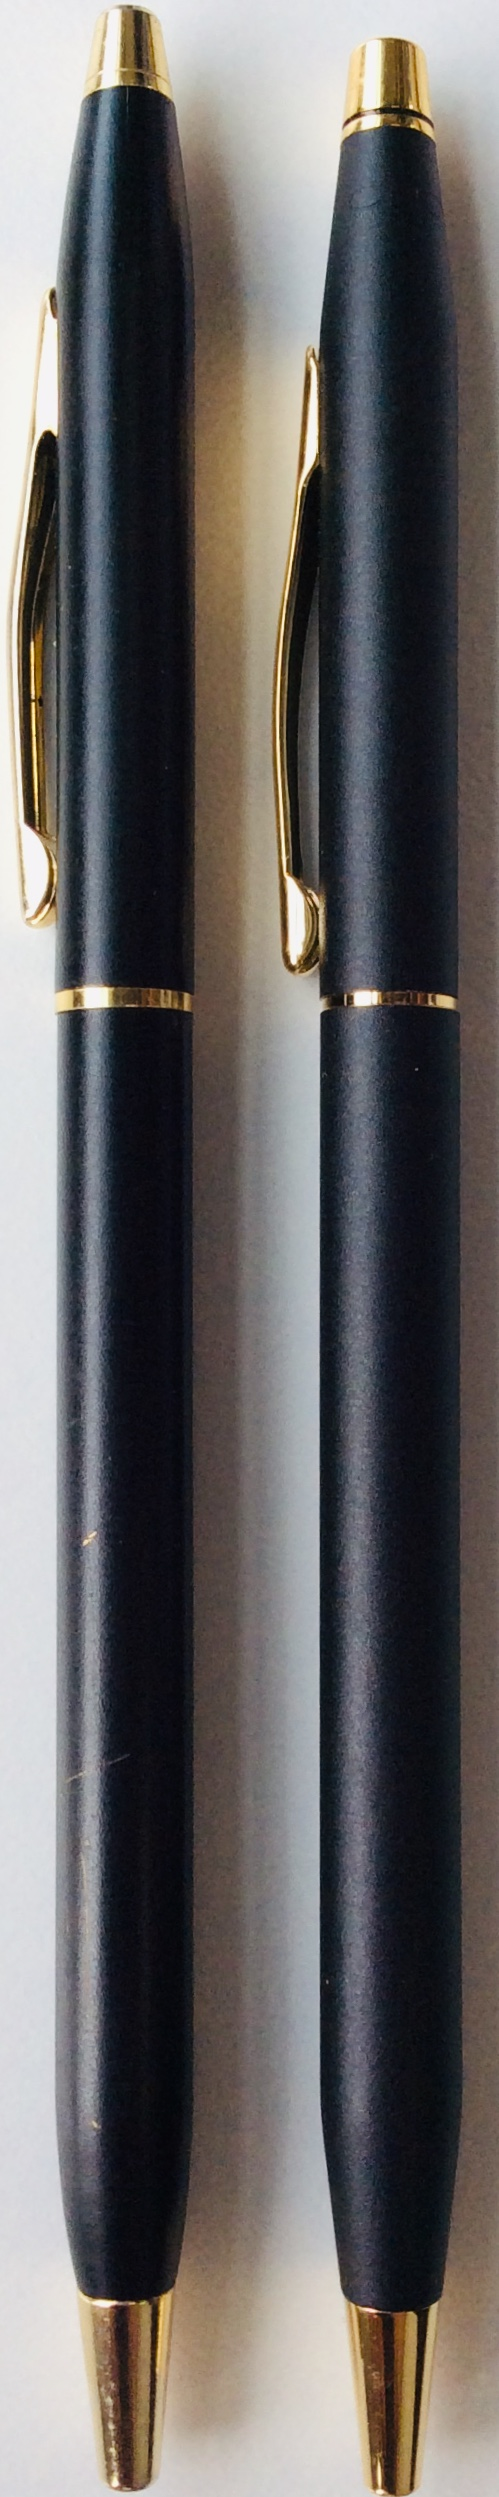 Cross Classic Century Classic Black Ballpoint Pen (with imitation double)